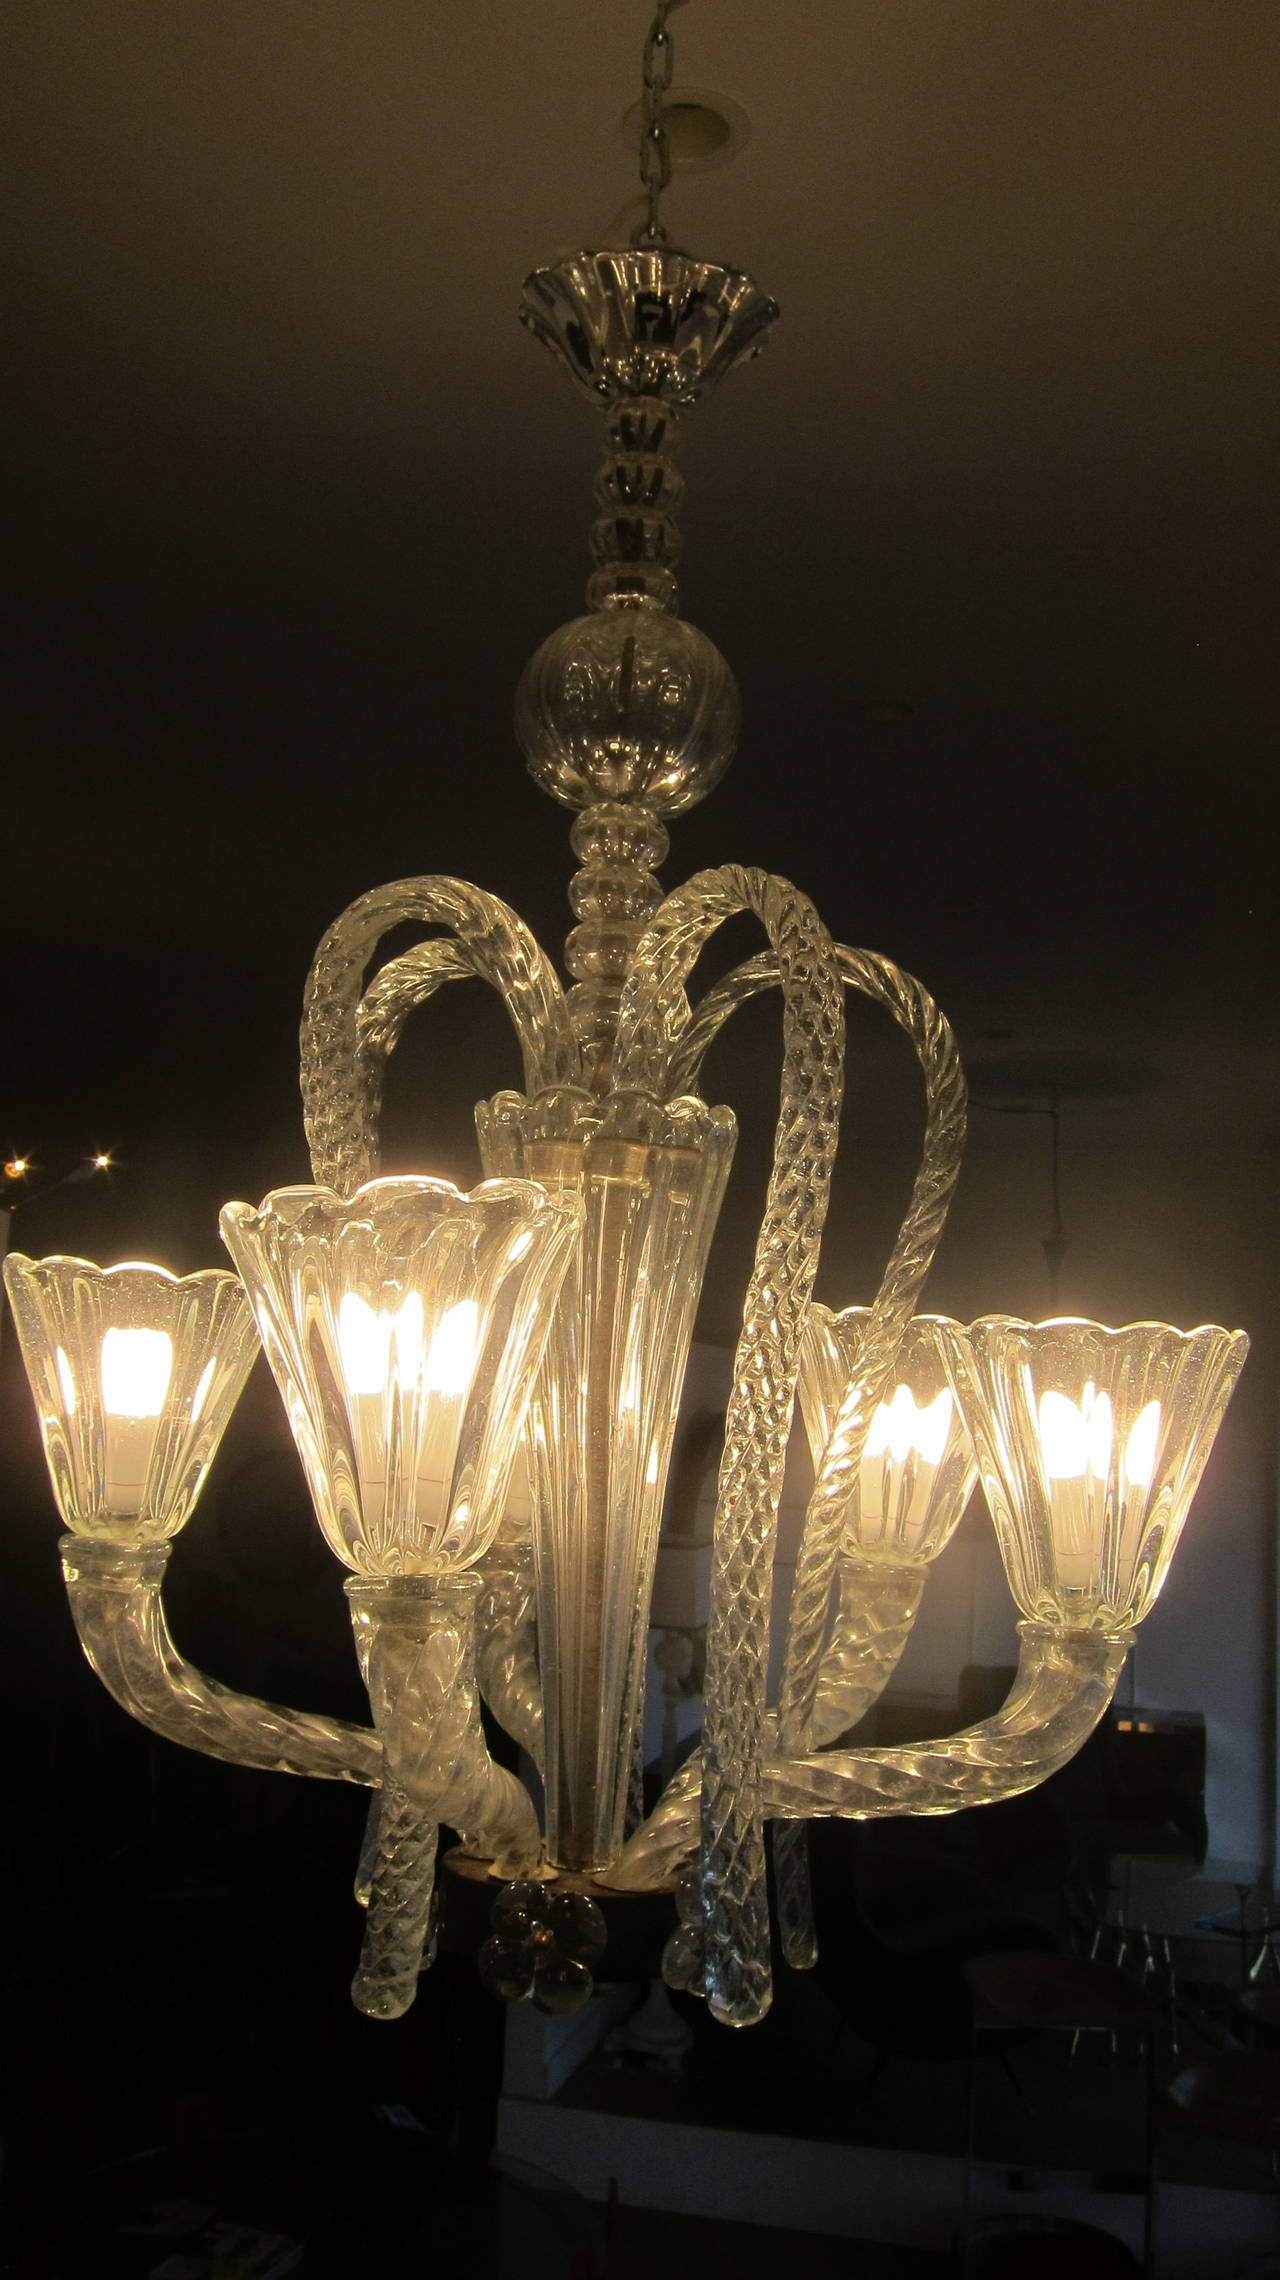 Murano glass chandelier by barovier e toso at 1stdibs for Barovier e toso